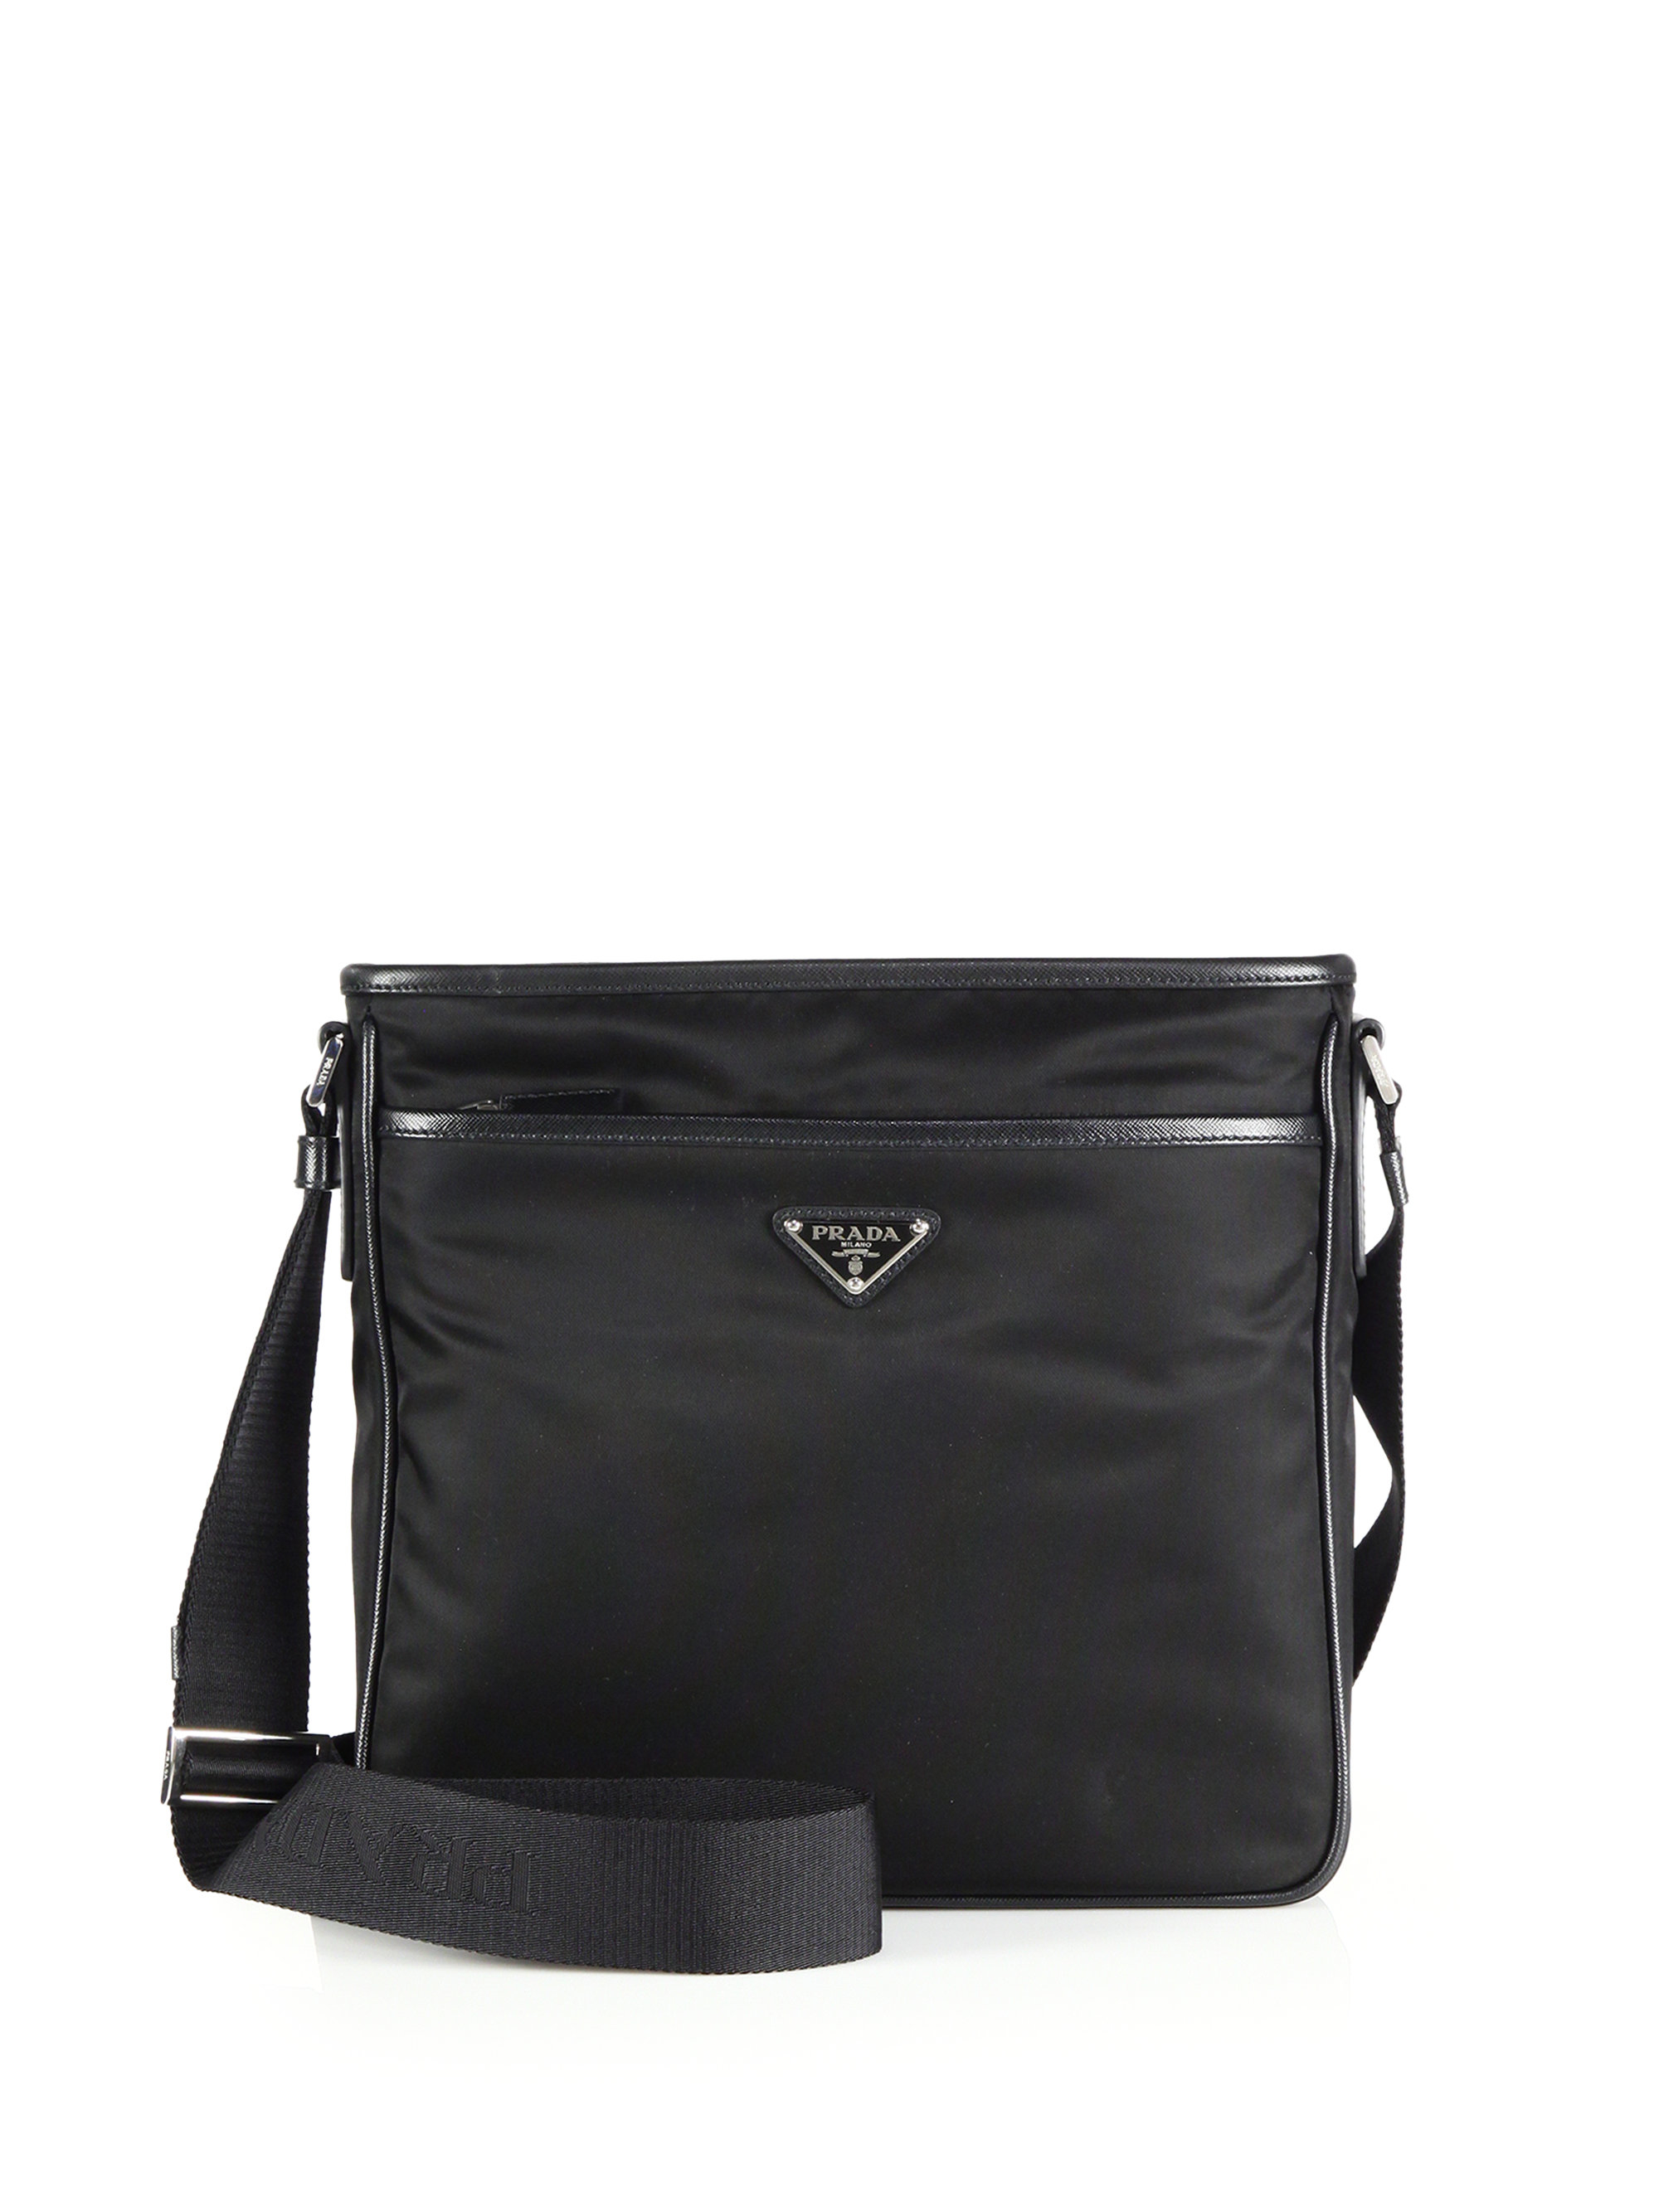 prada wallet purple - Prada Nylon Crossbody Bag in Black for Men | Lyst